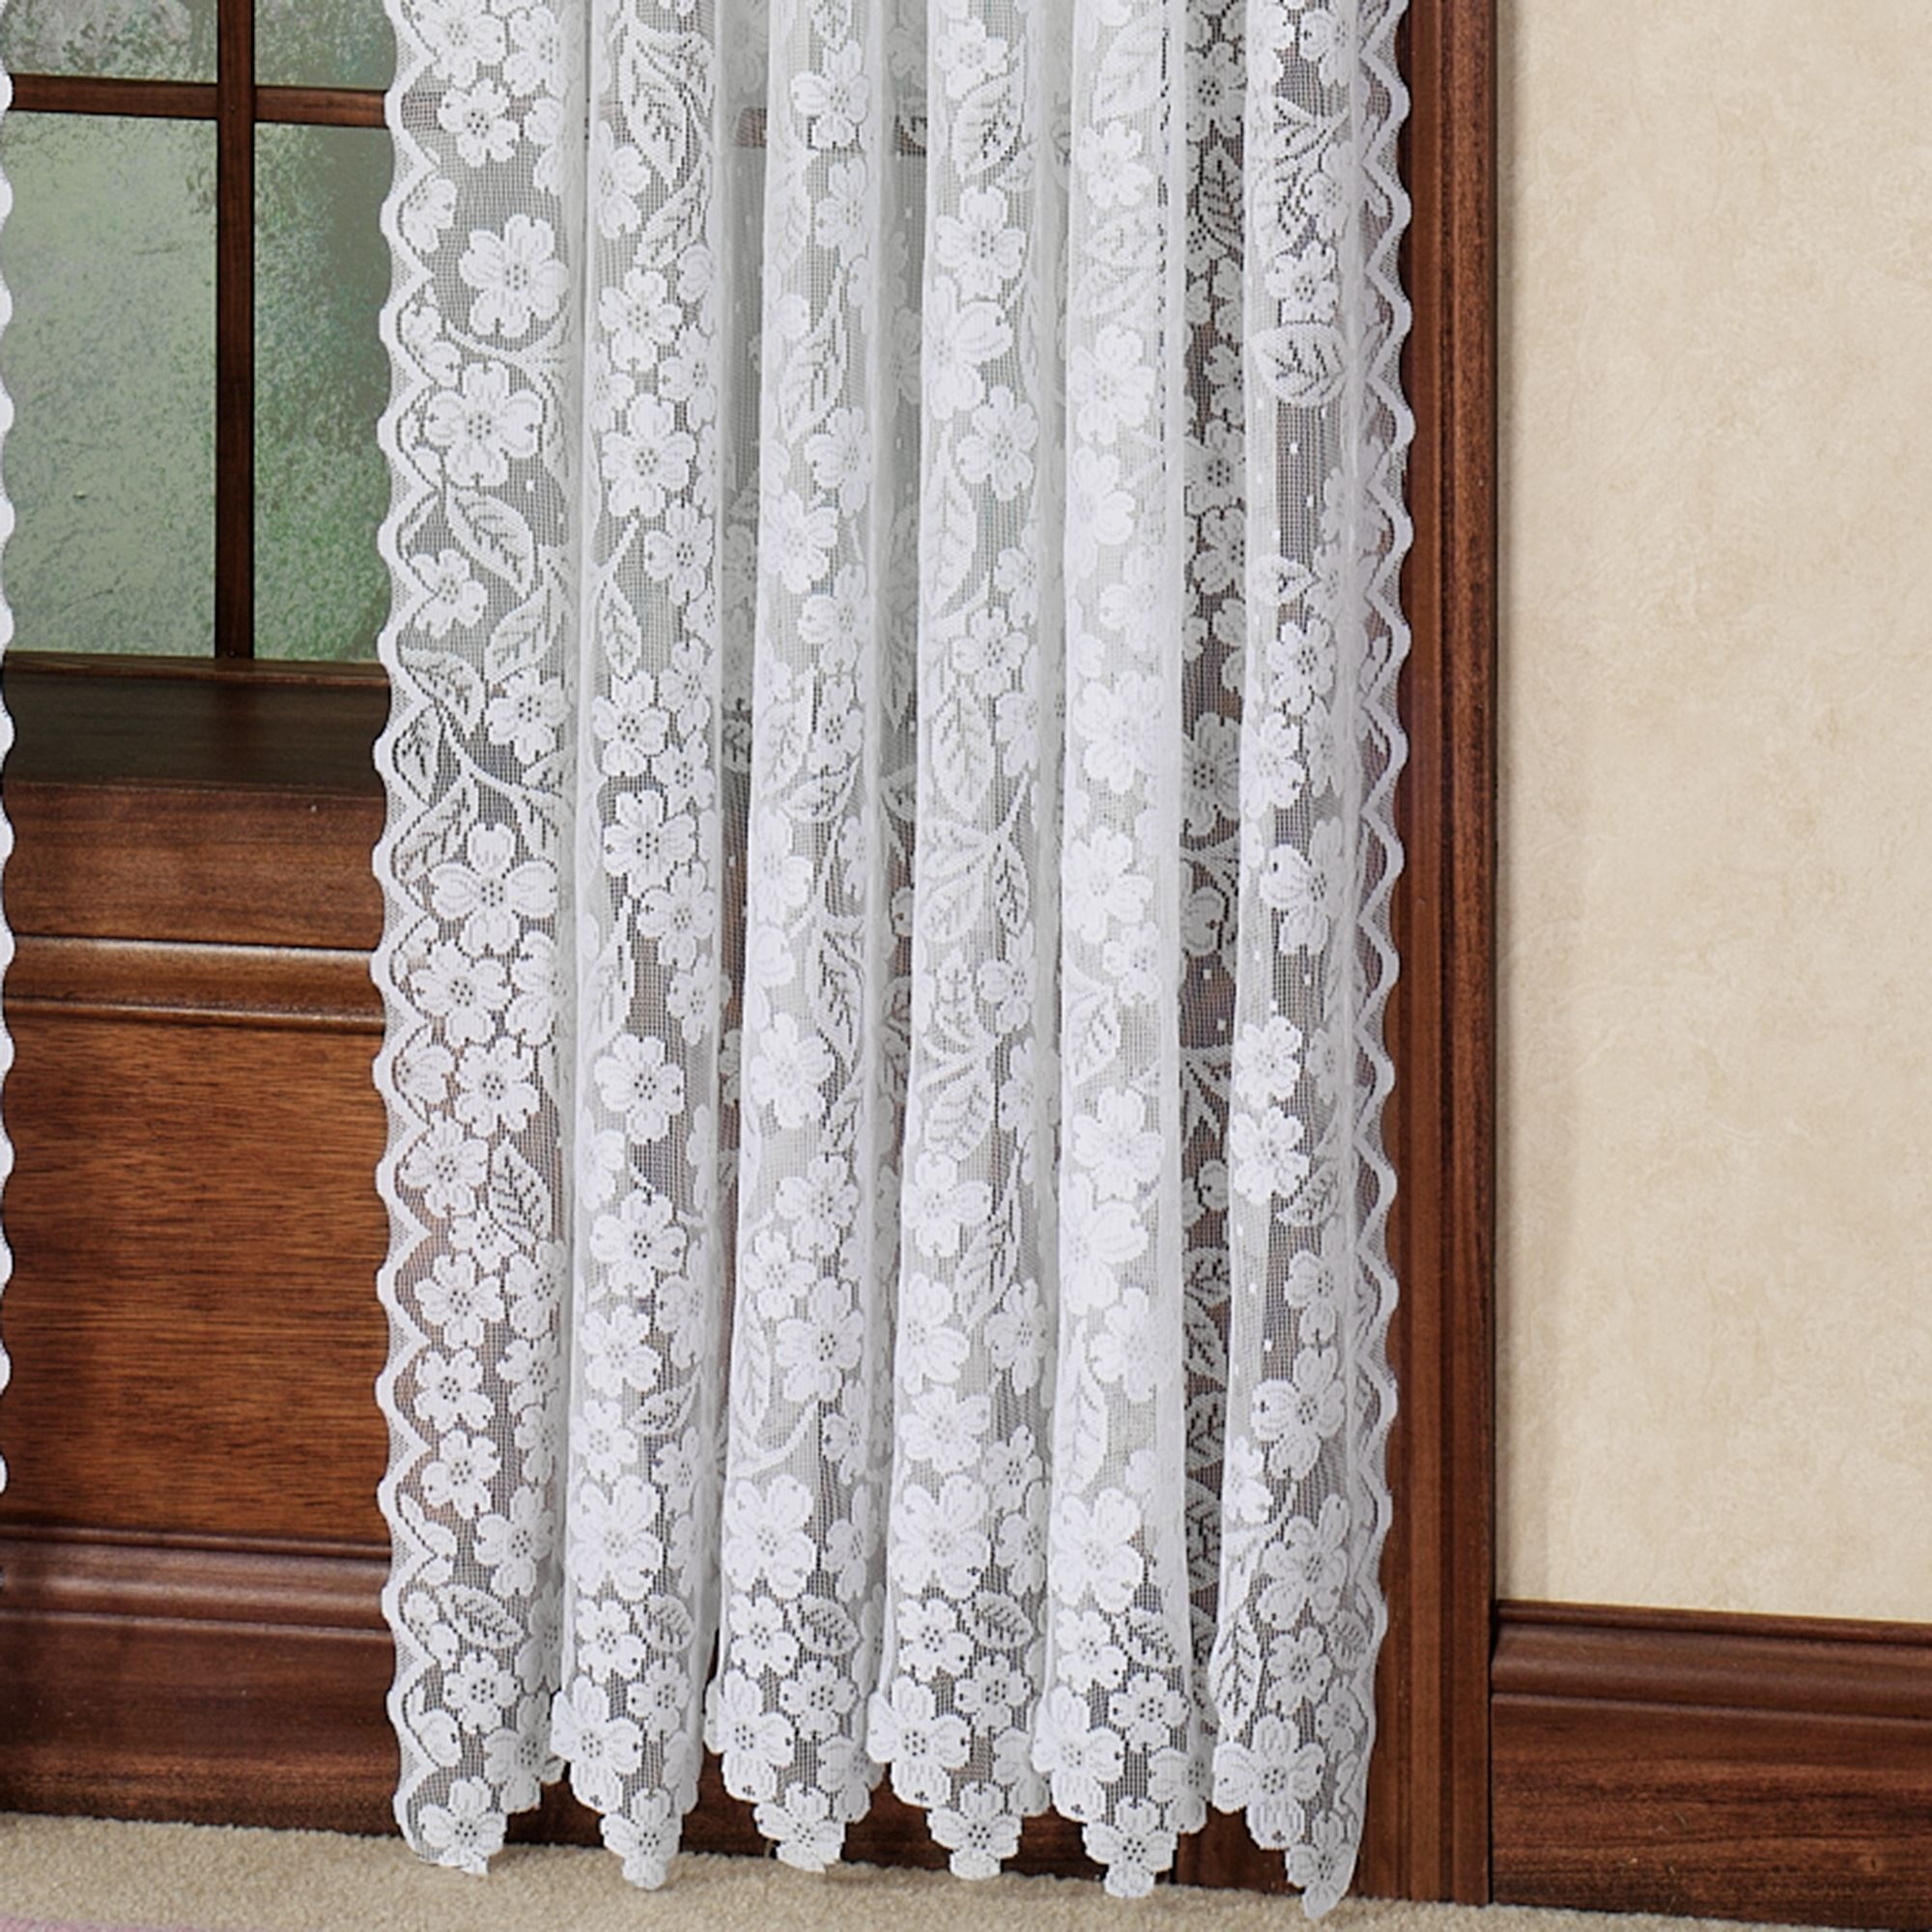 curtain room swag curtains lace windows delight intriguing valance the yard by for living with fo decorating panel material valances